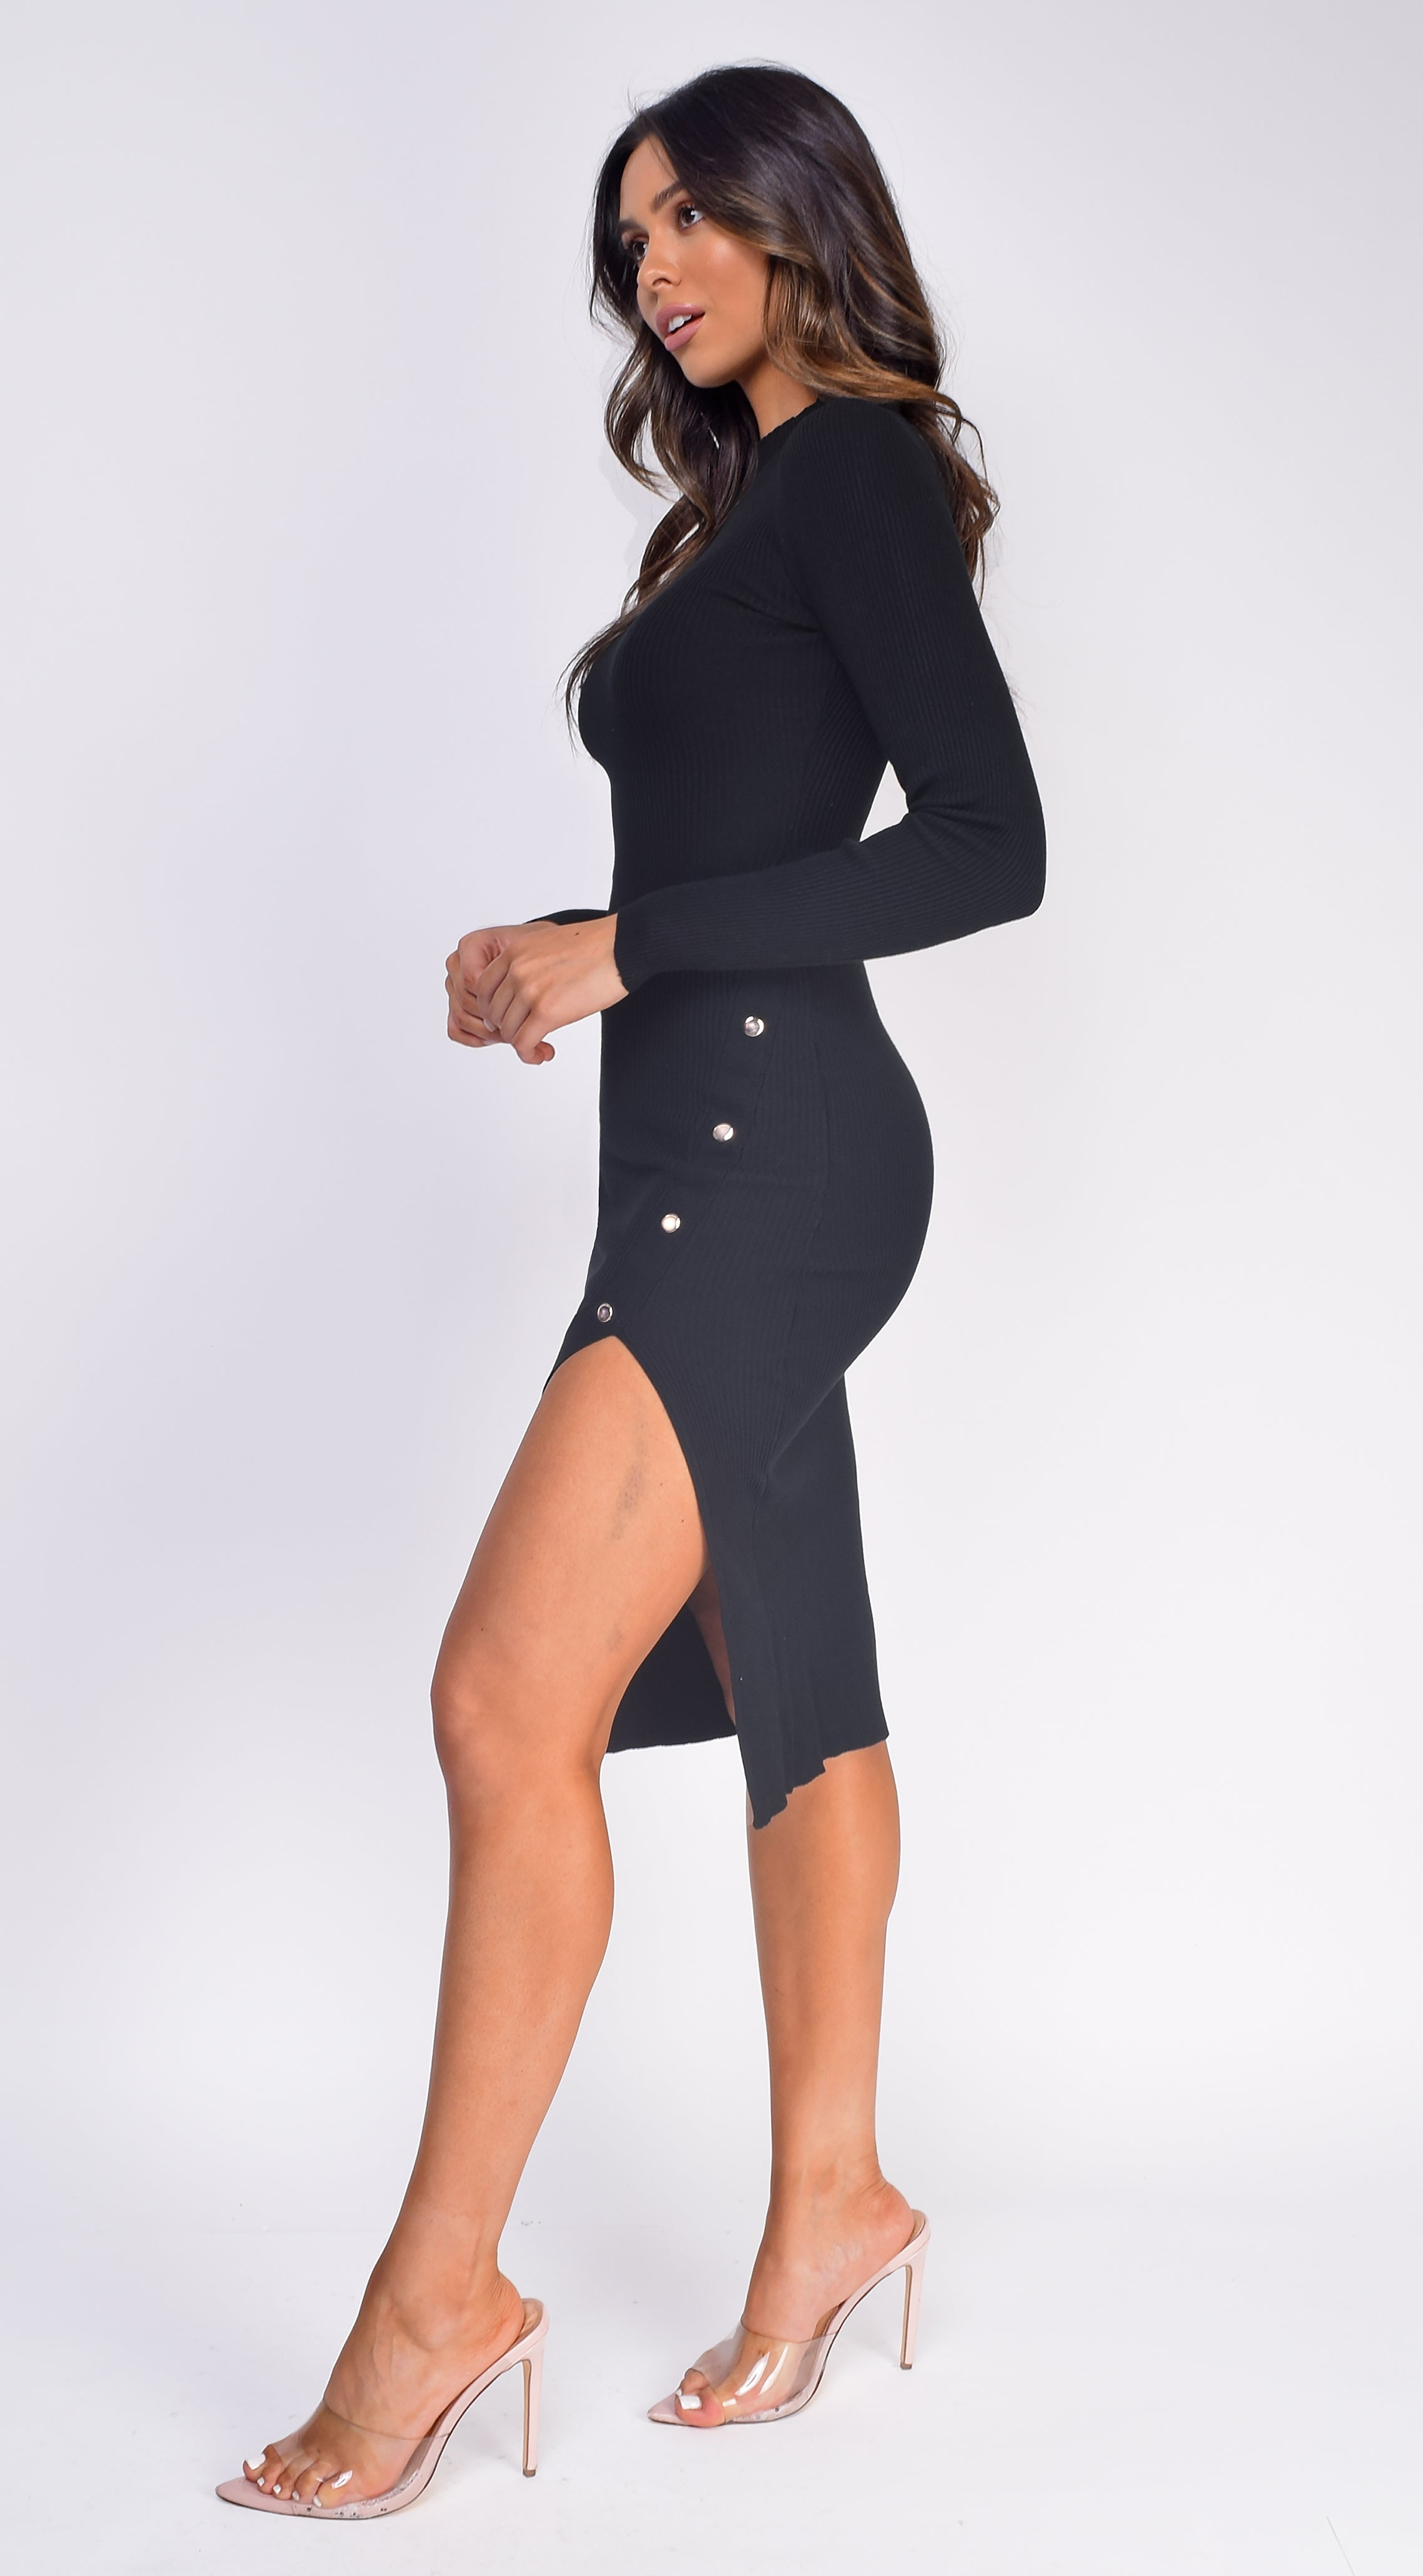 Zola Black High Neck Button Ribbed Side Slit Dress